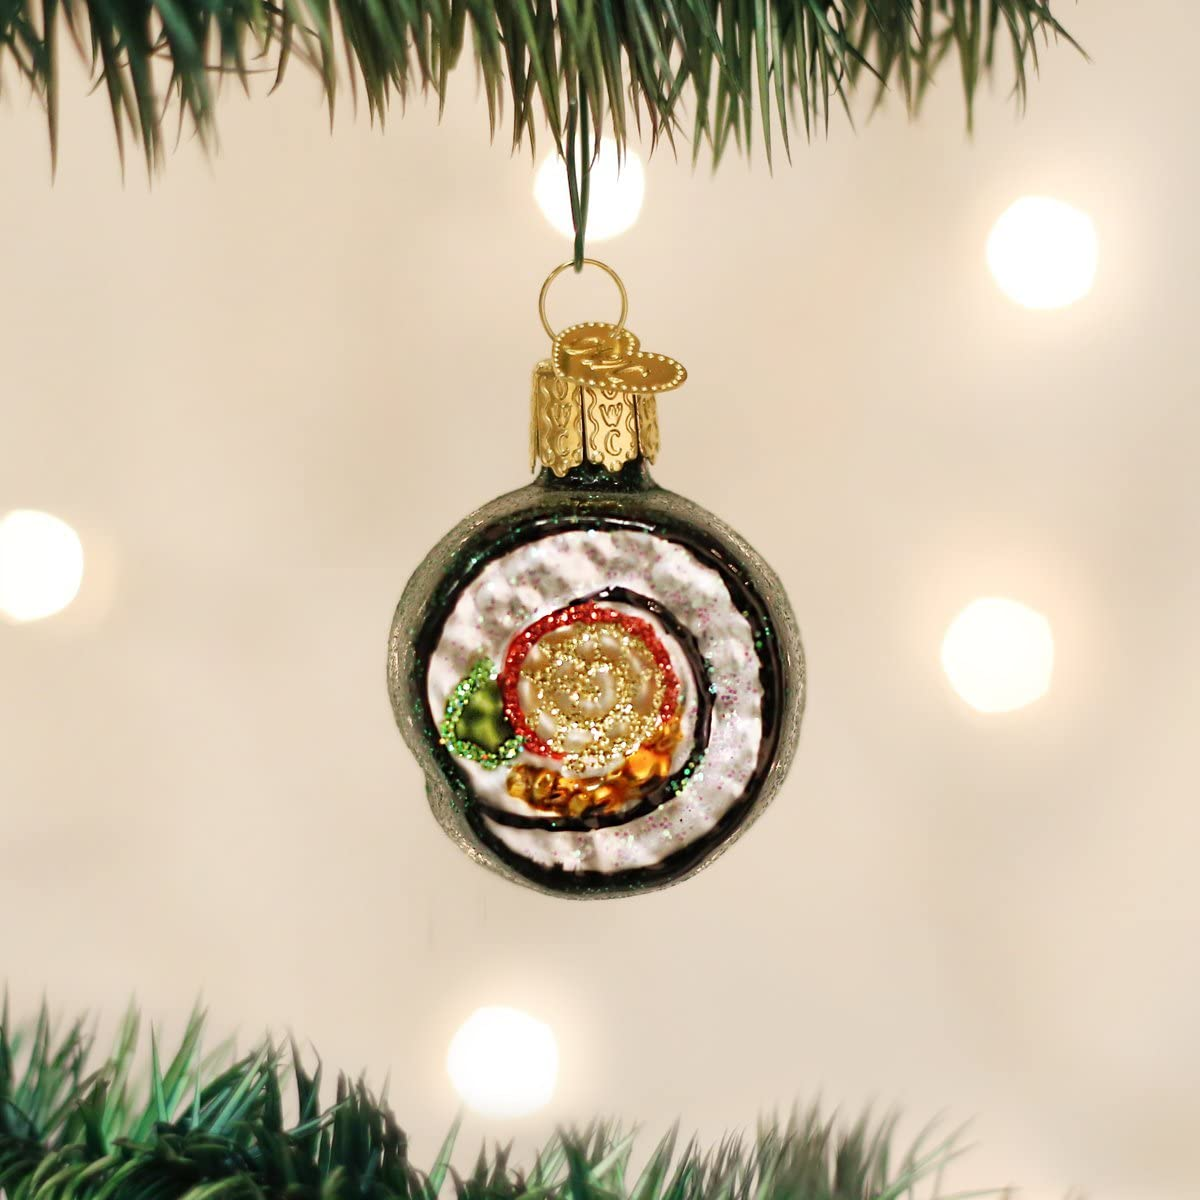 Bagel Glass Blown Ornaments for Christmas Tree Old World Christmas Ornaments 32221